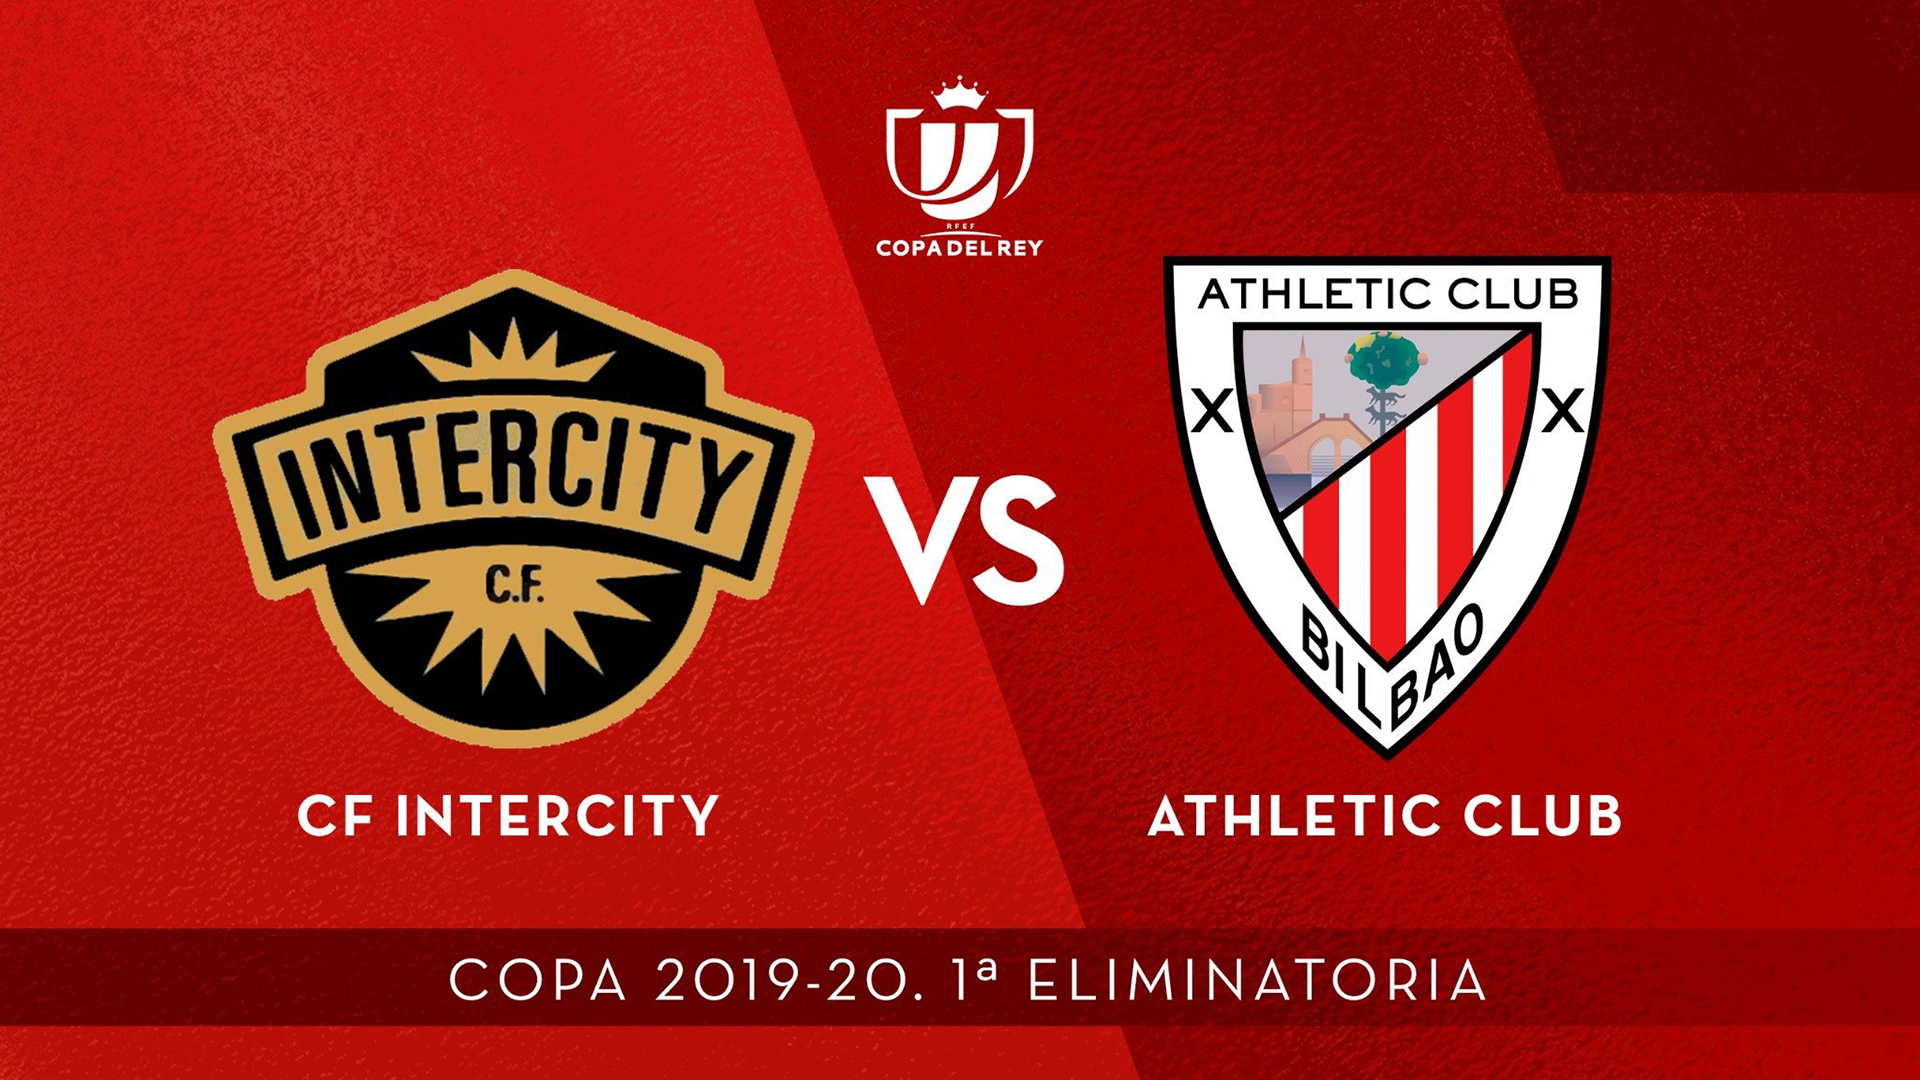 C.F. Intercity-Athletic Club partidarako sarrerak